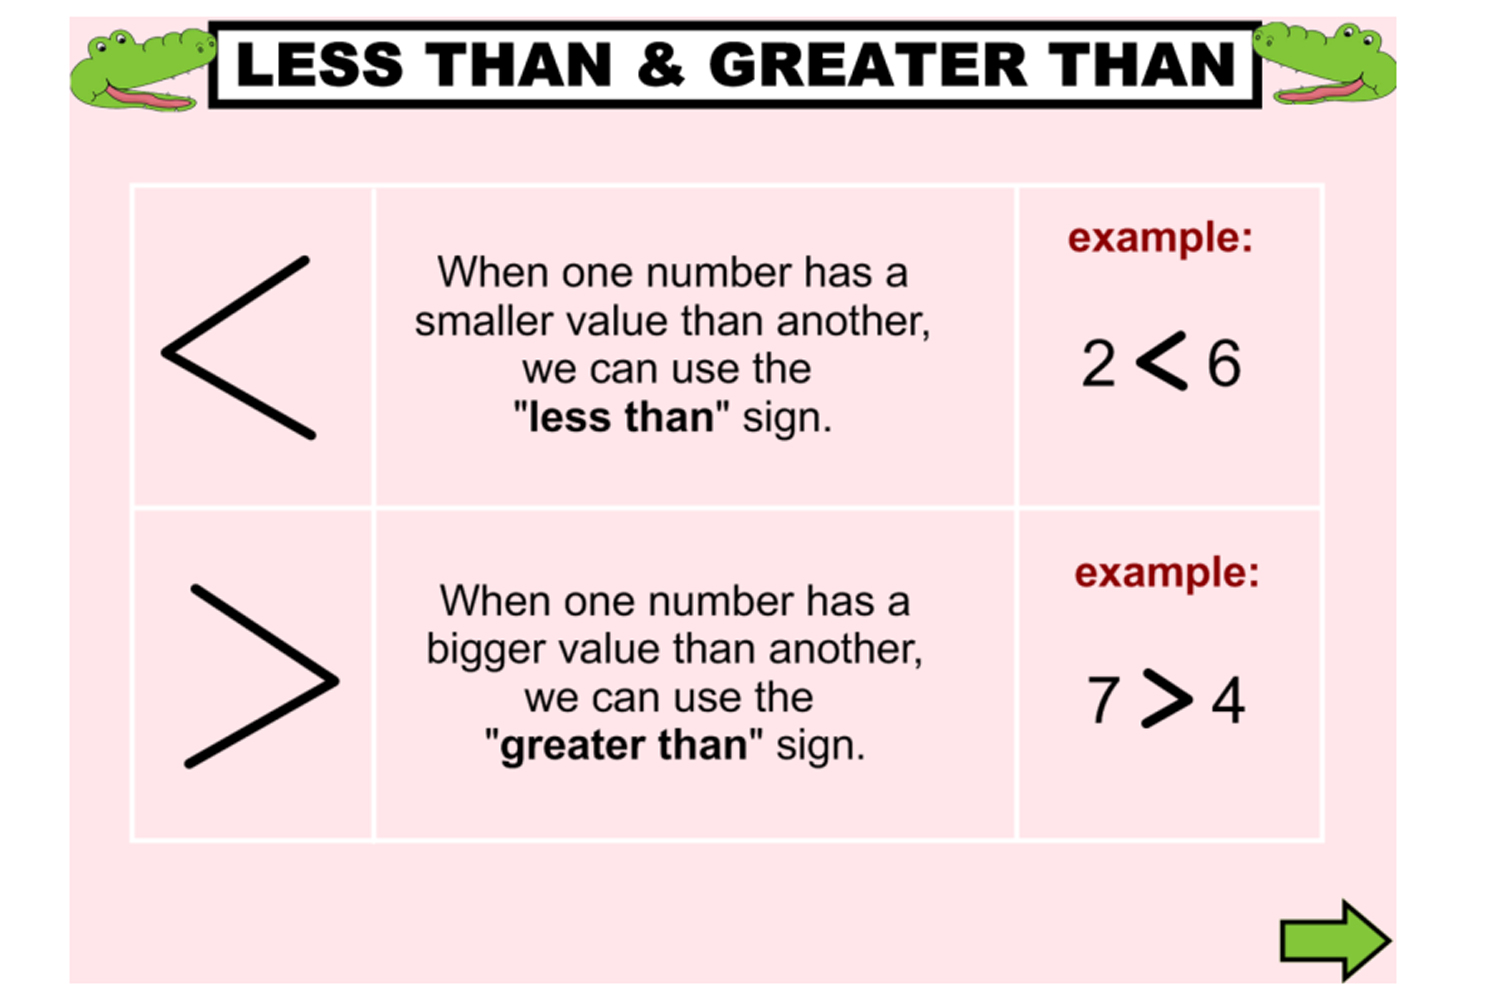 worksheet Less Than Greater Than lesson details less than and greater than